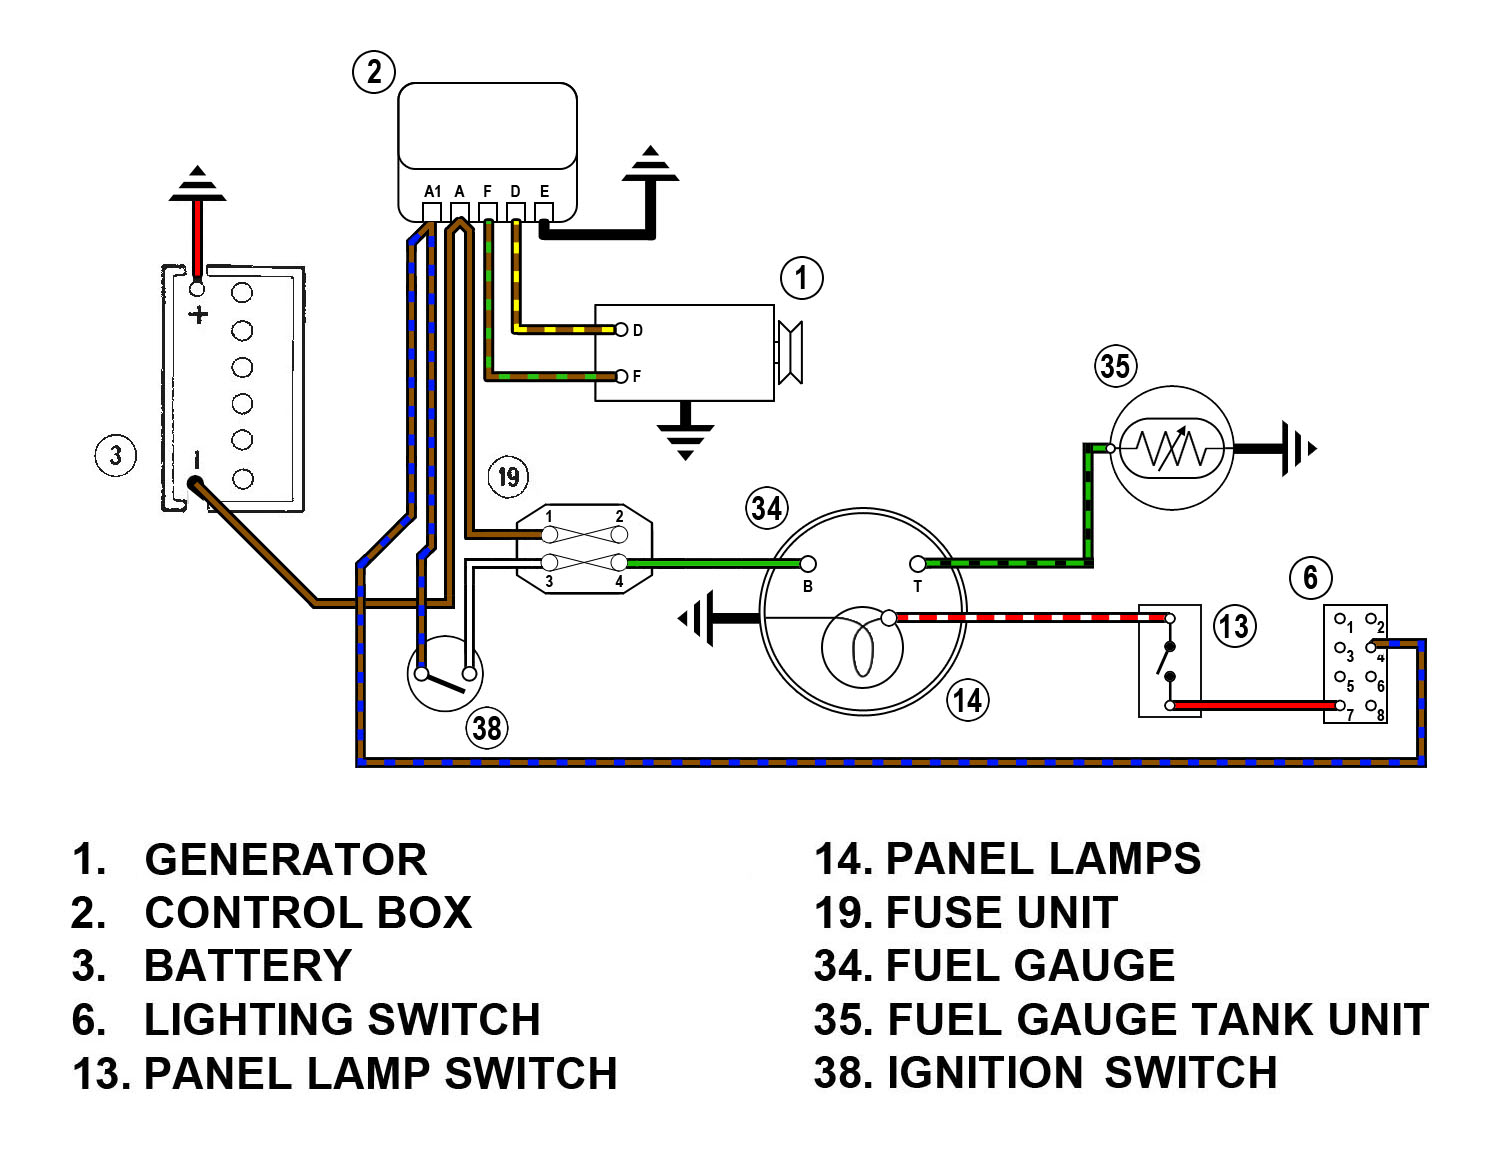 fuel gauge wiring diagram marine fuel gauge wiring diagram fuel gauge wiring diagram spridgetguru com tech index fuel gauge wiring diagram